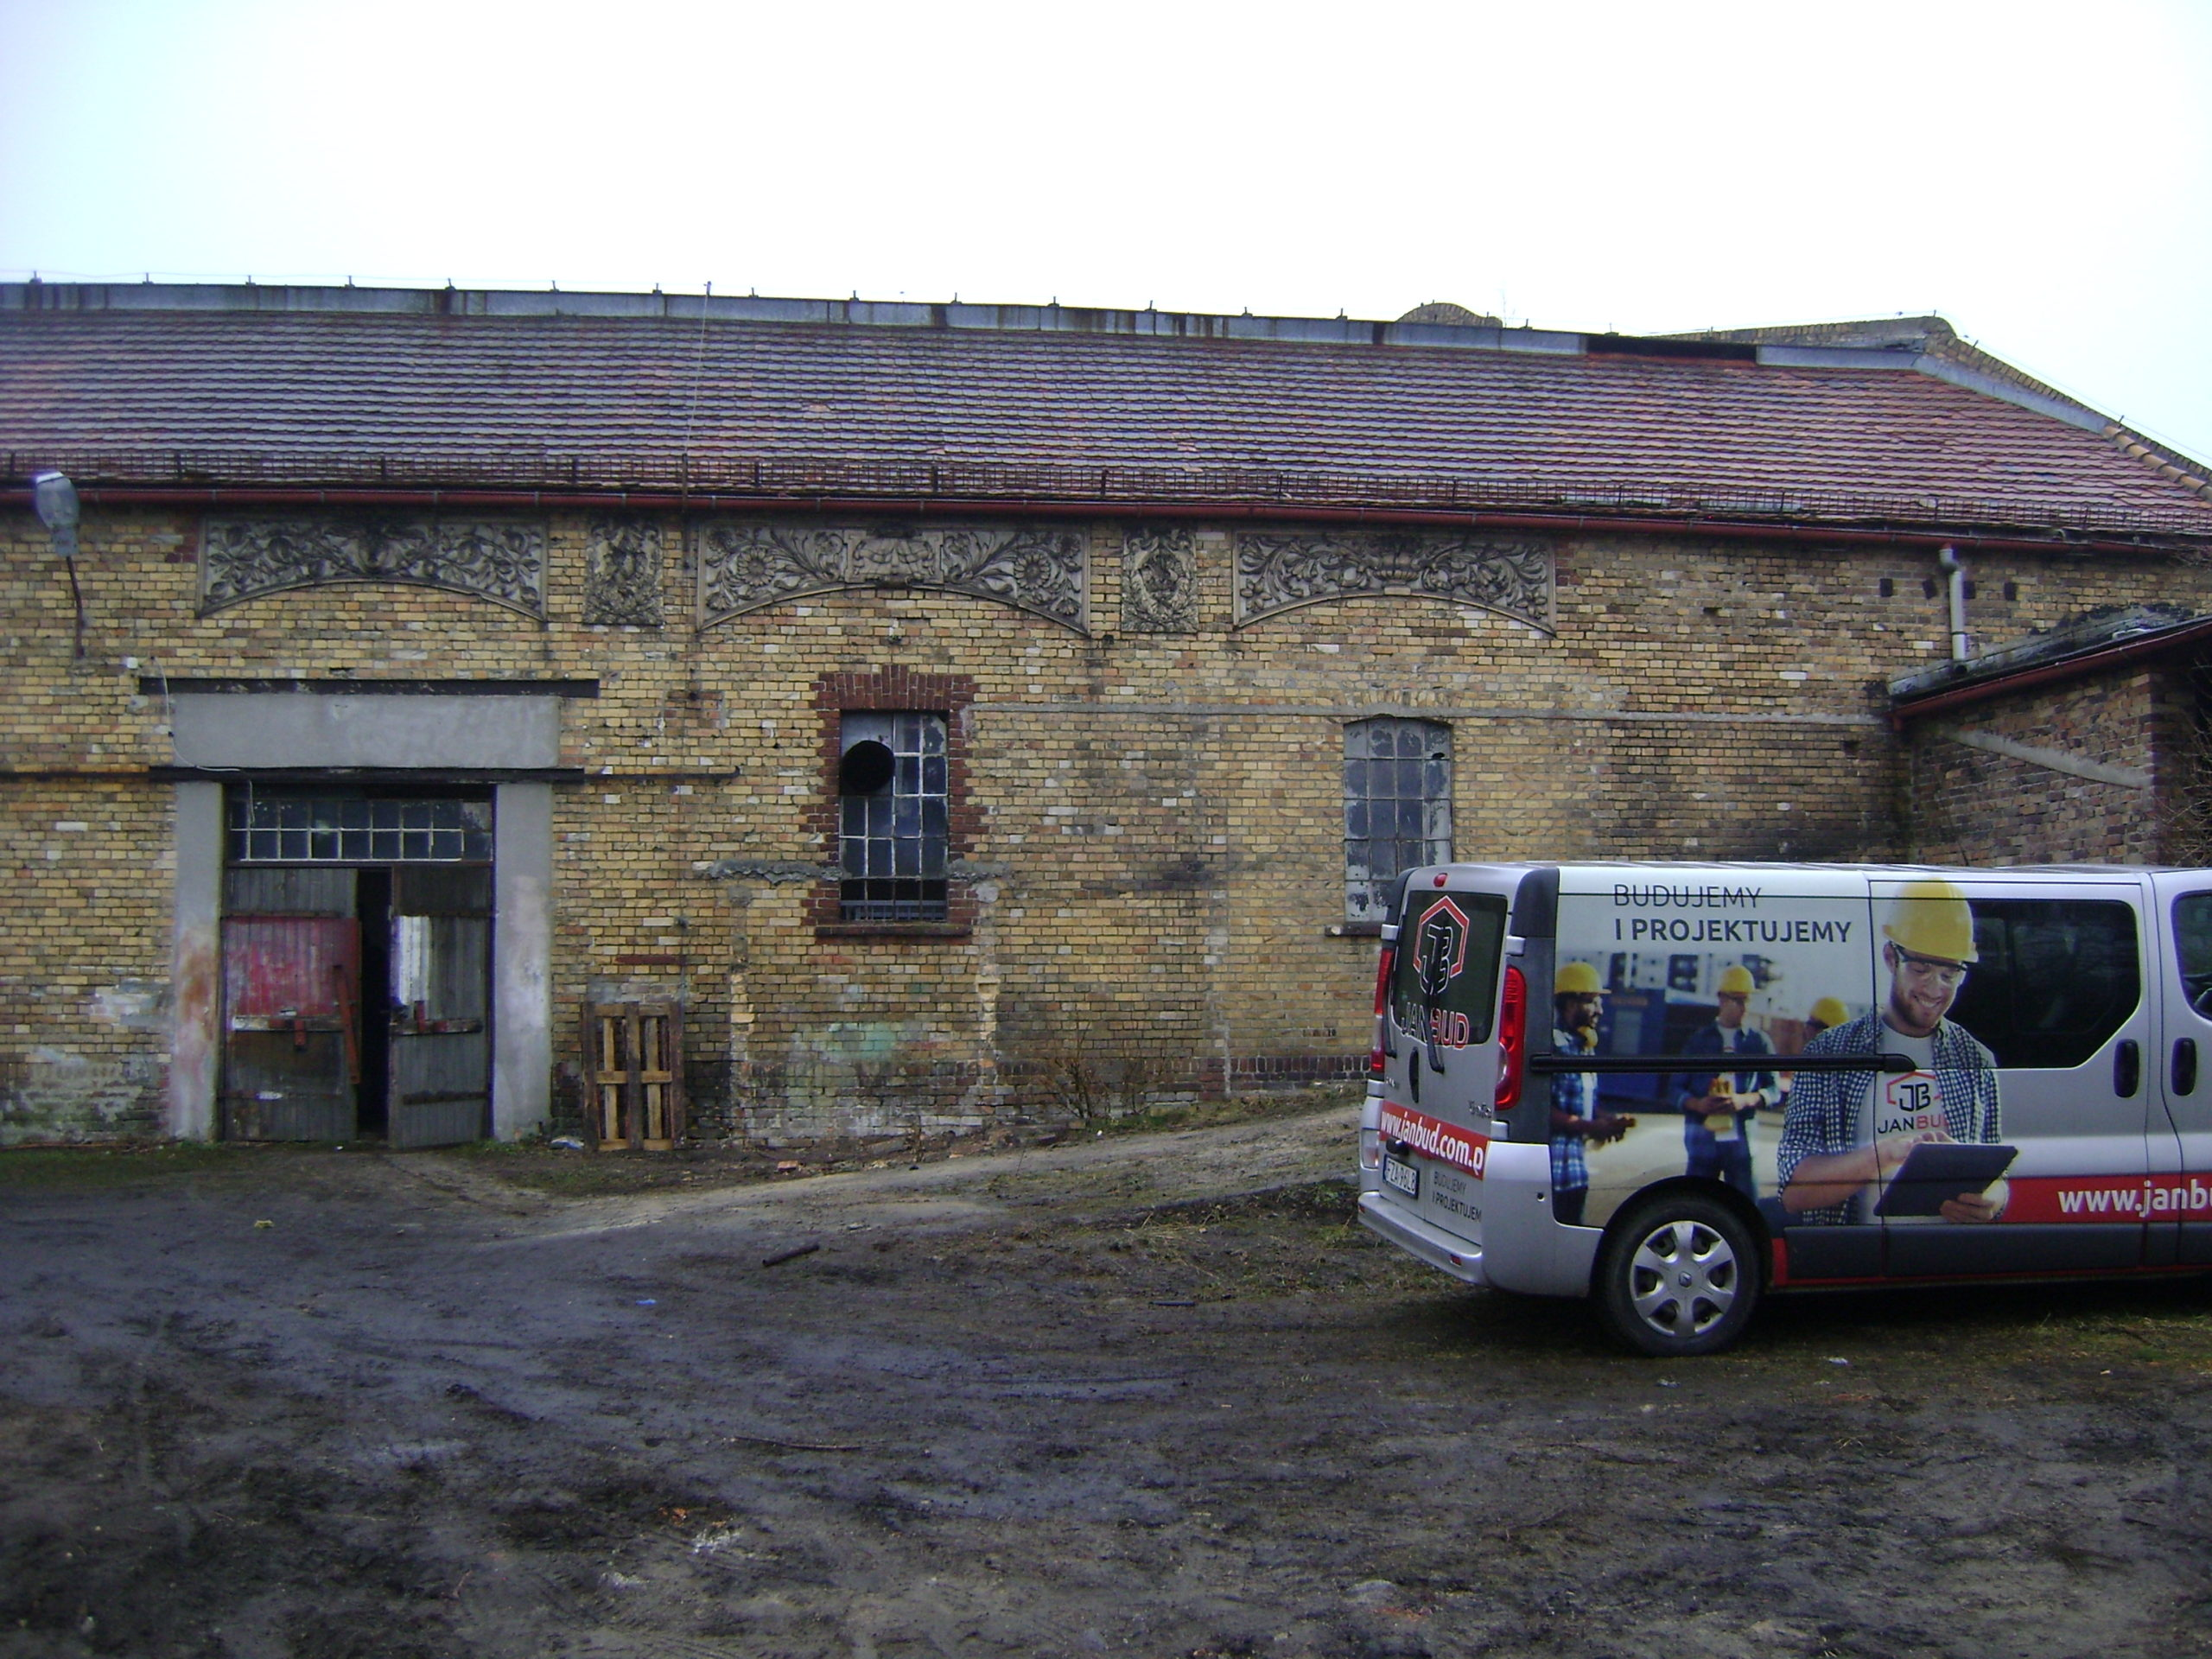 Renovation works on a building in Łęknica